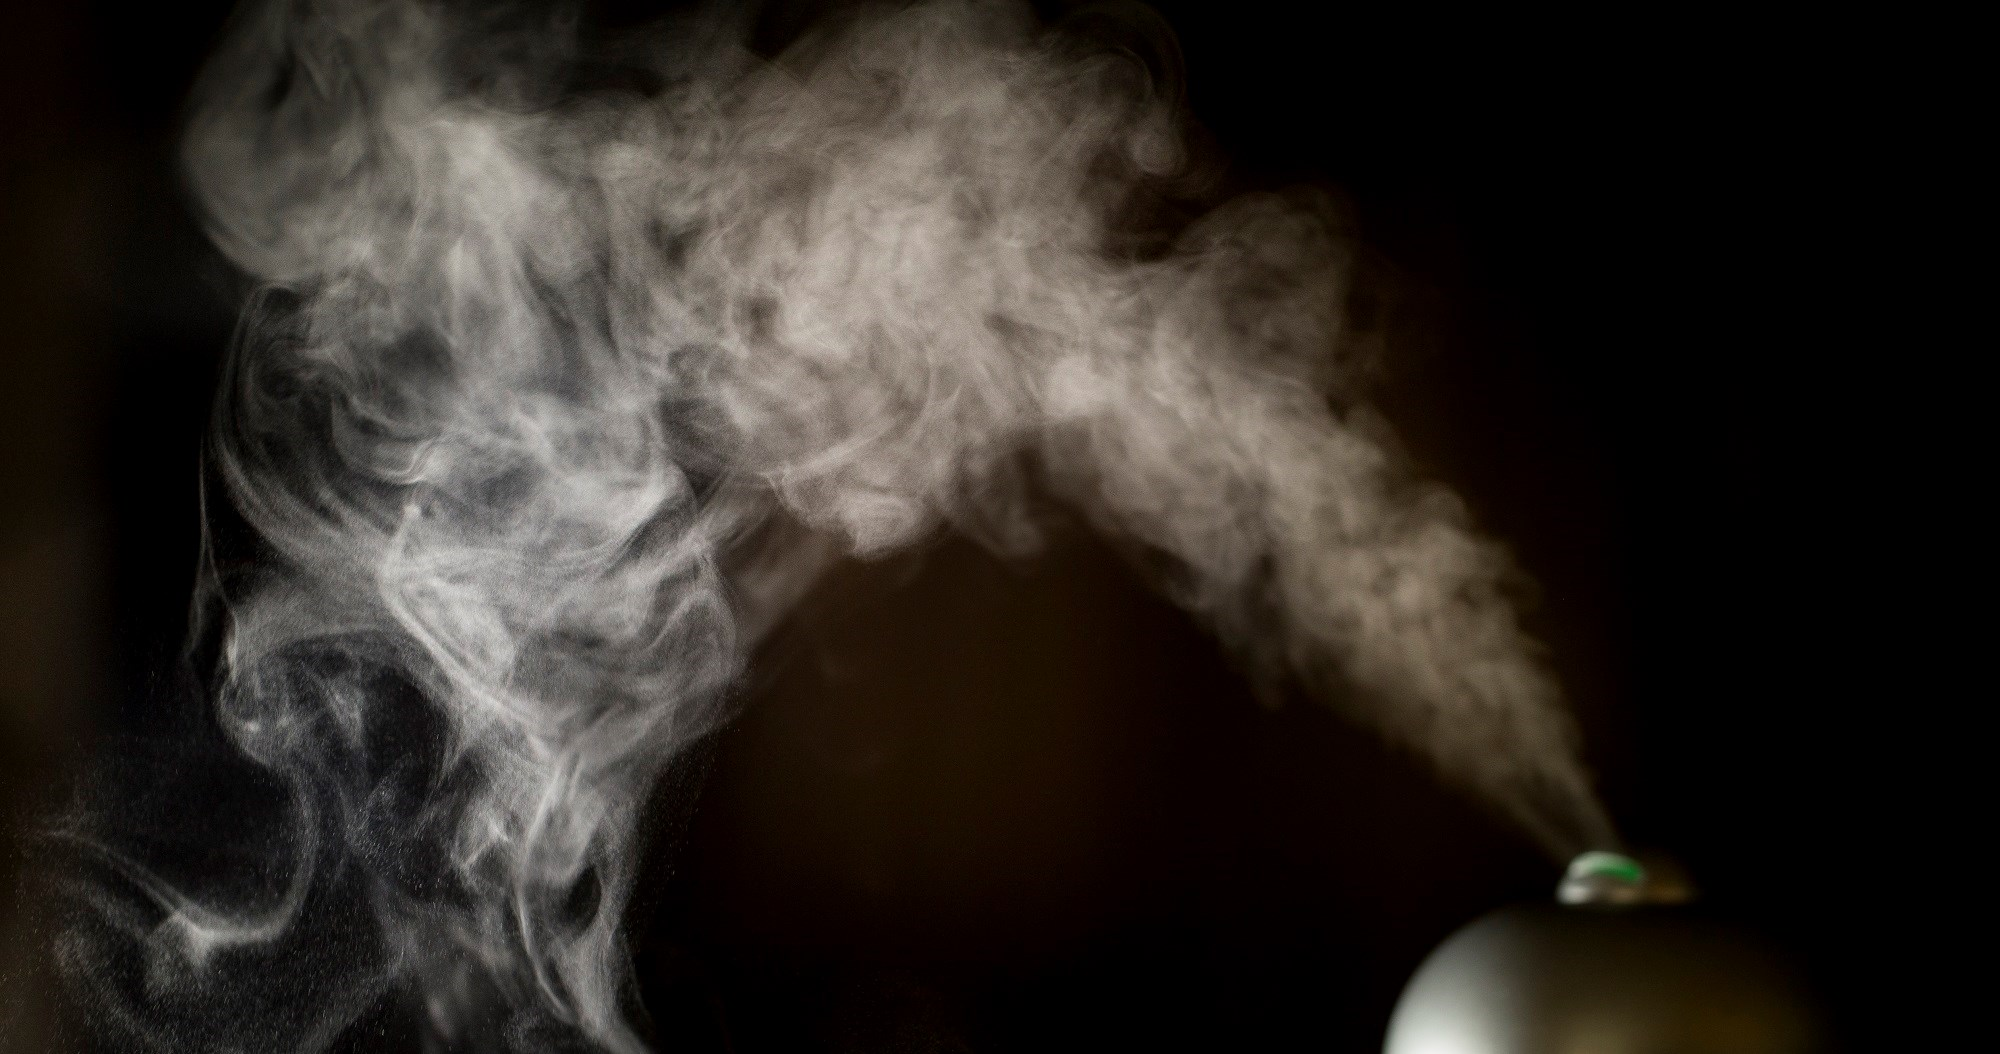 Vaporized Cannabis Has Lack of Effect on Airway Function in COPD